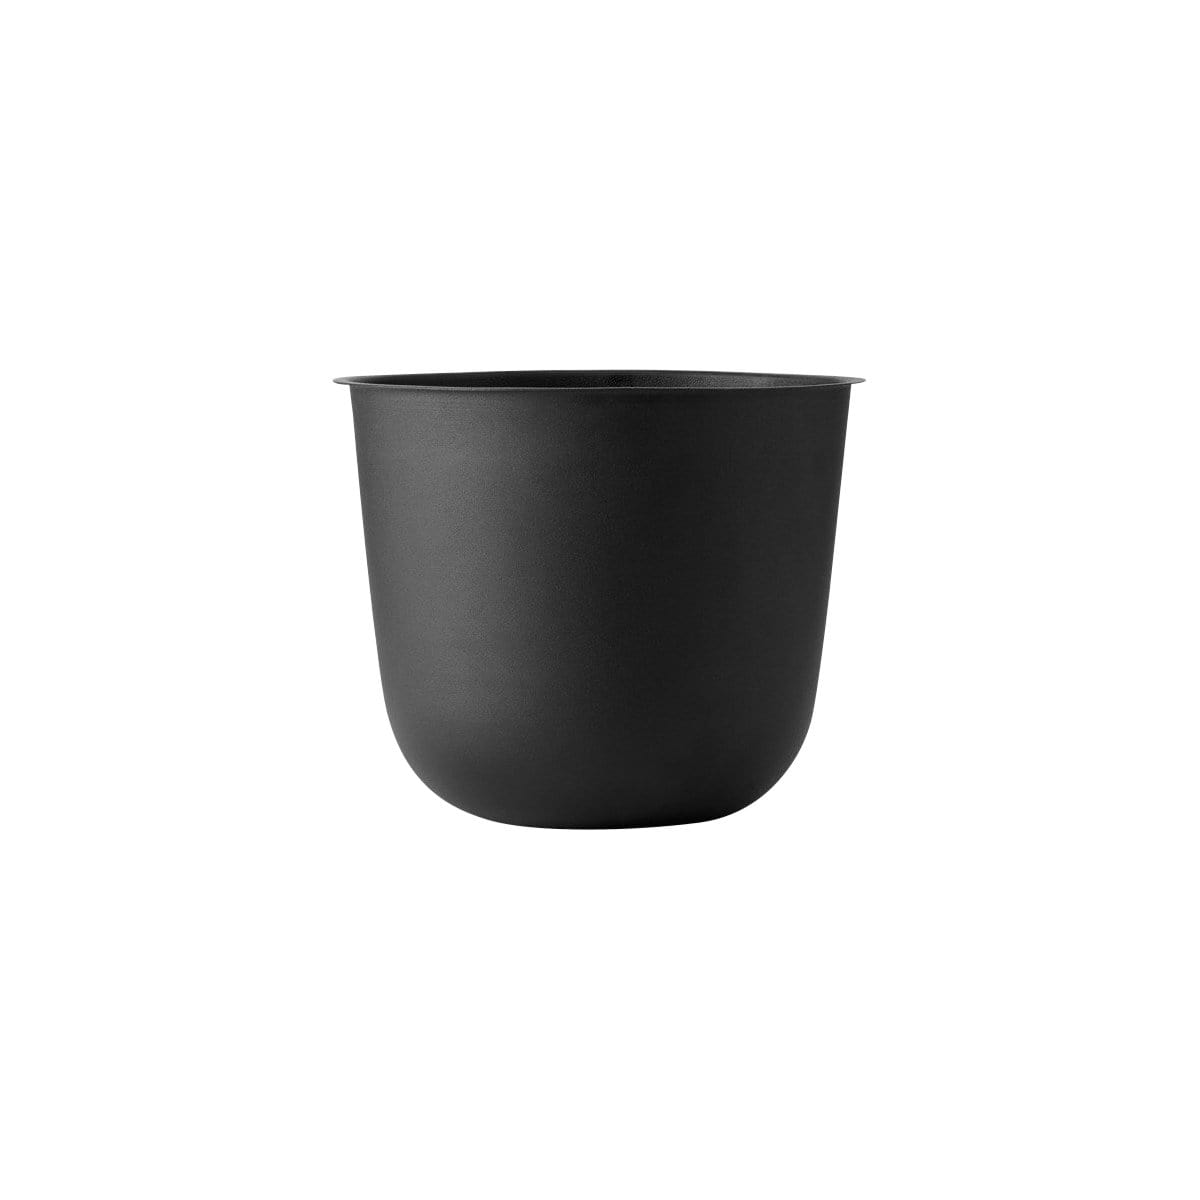 MENU Planters, Pots + Vases Black Wire Pot for Wire Base